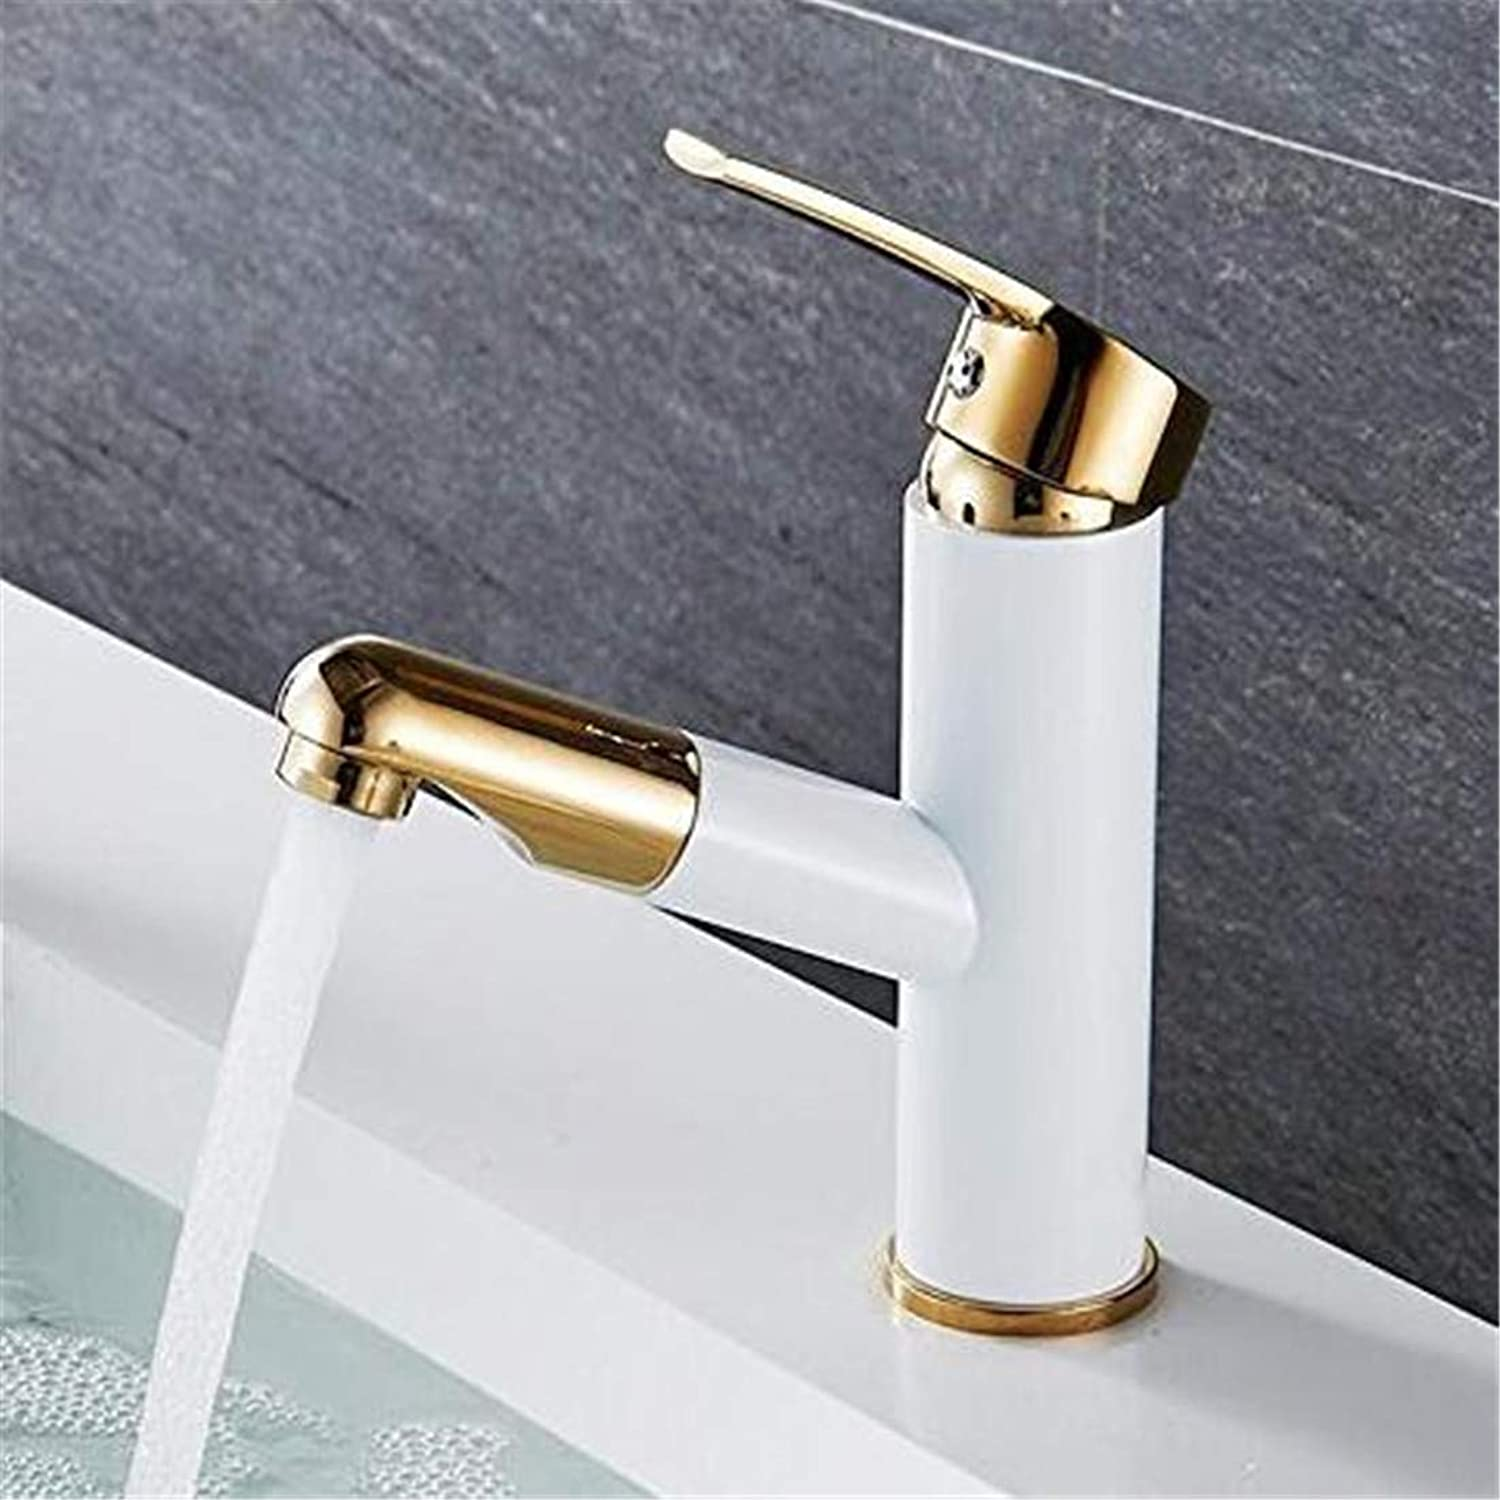 Chrome Kitchen Sink Tapgold Bathroom Faucets Pull Out Brass Basin Mixer Faucet Cold and Hot Bathroom Taps